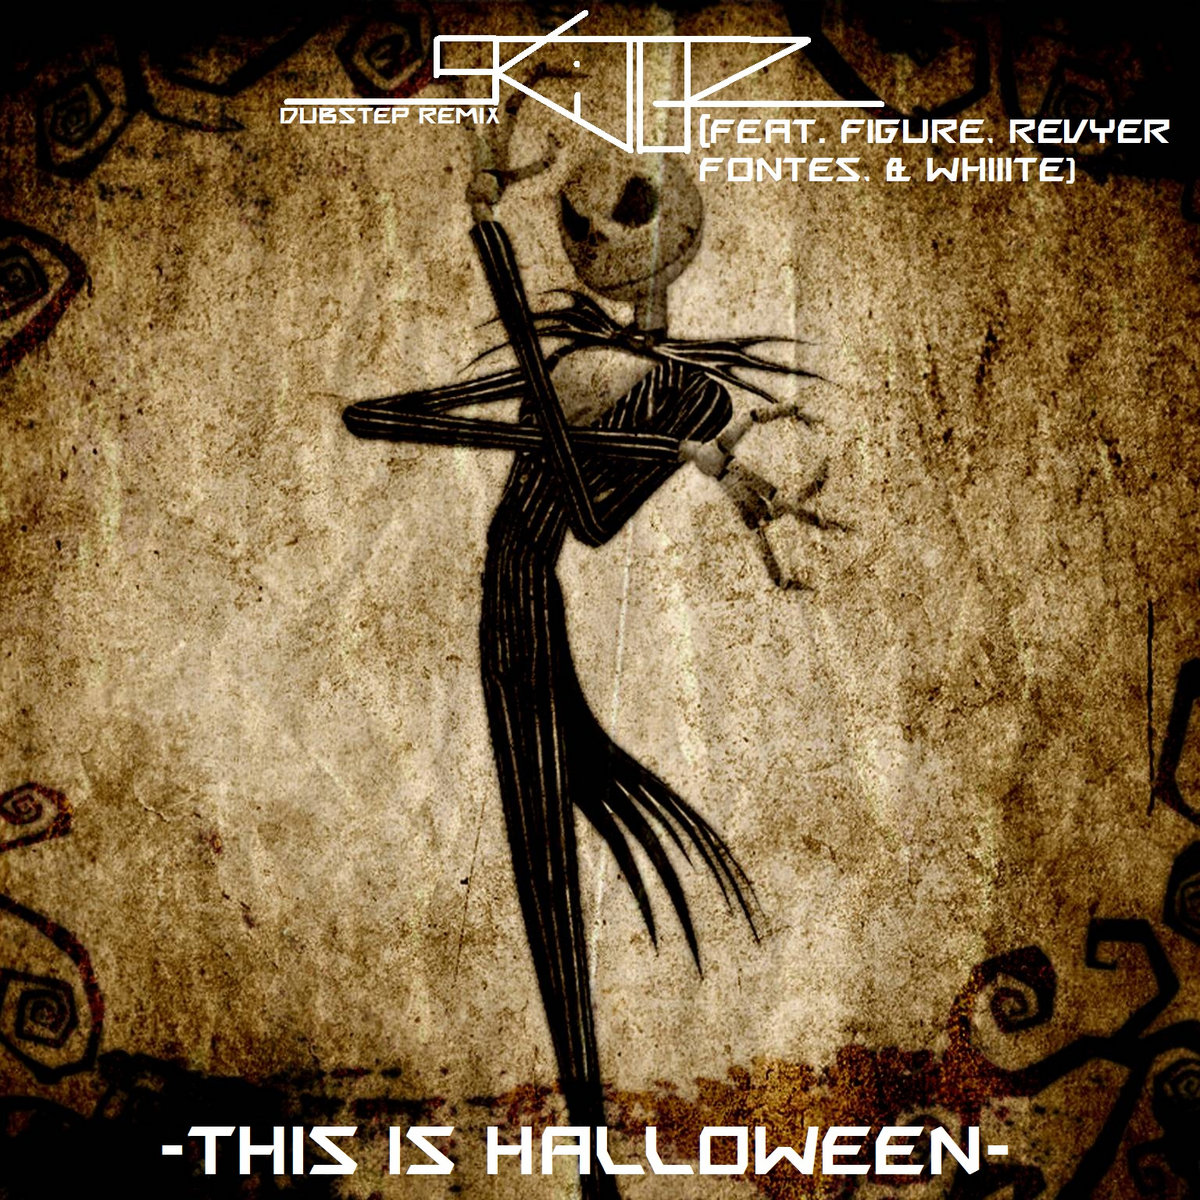 ... Figure, & Revyer Fontes) (Nightmare Before Christmas Remix) cover art